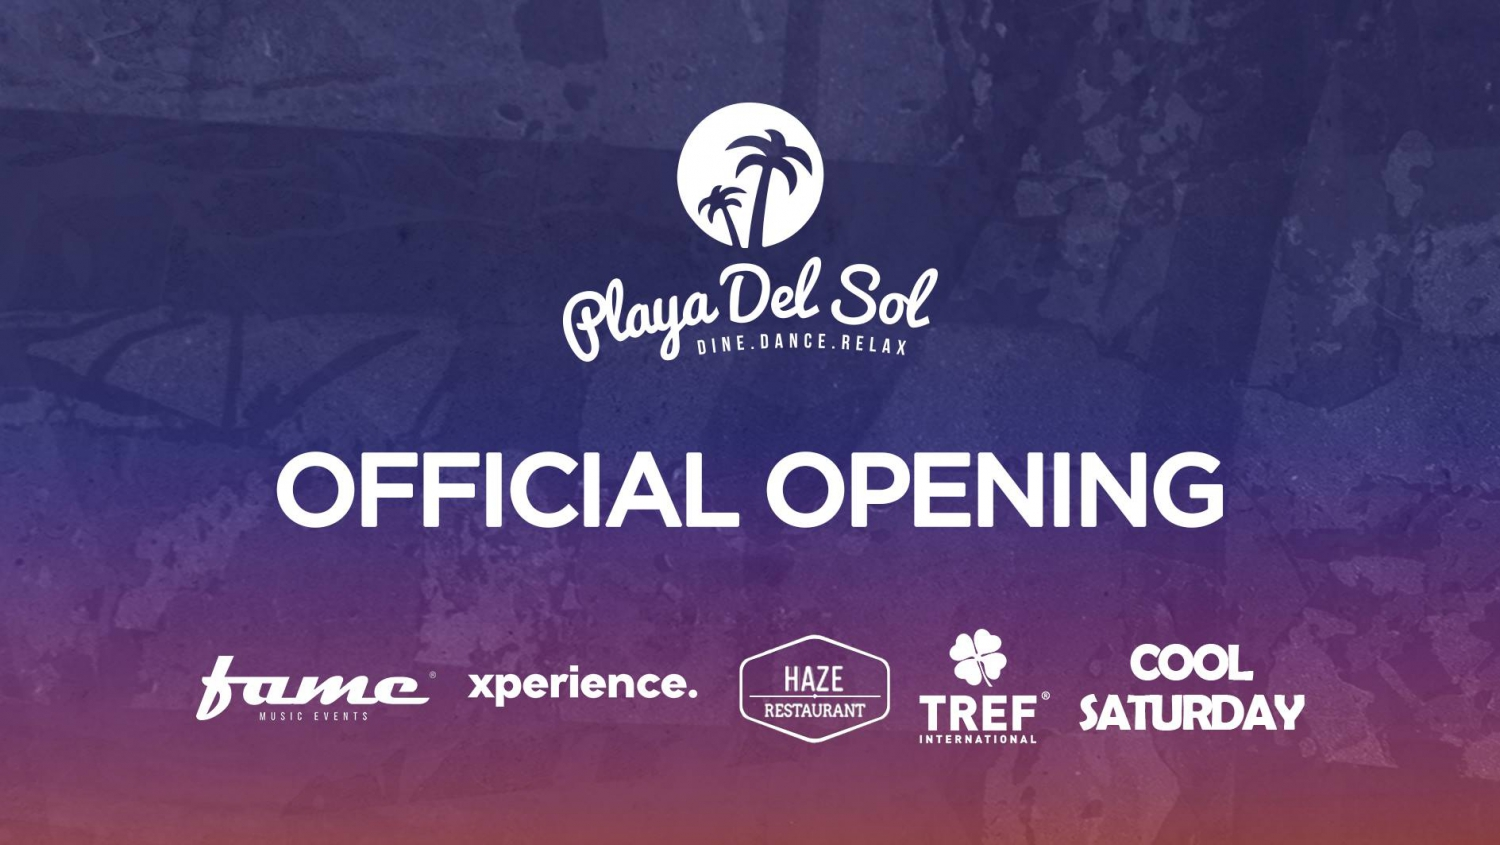 Playa Del Sol - Official Opening